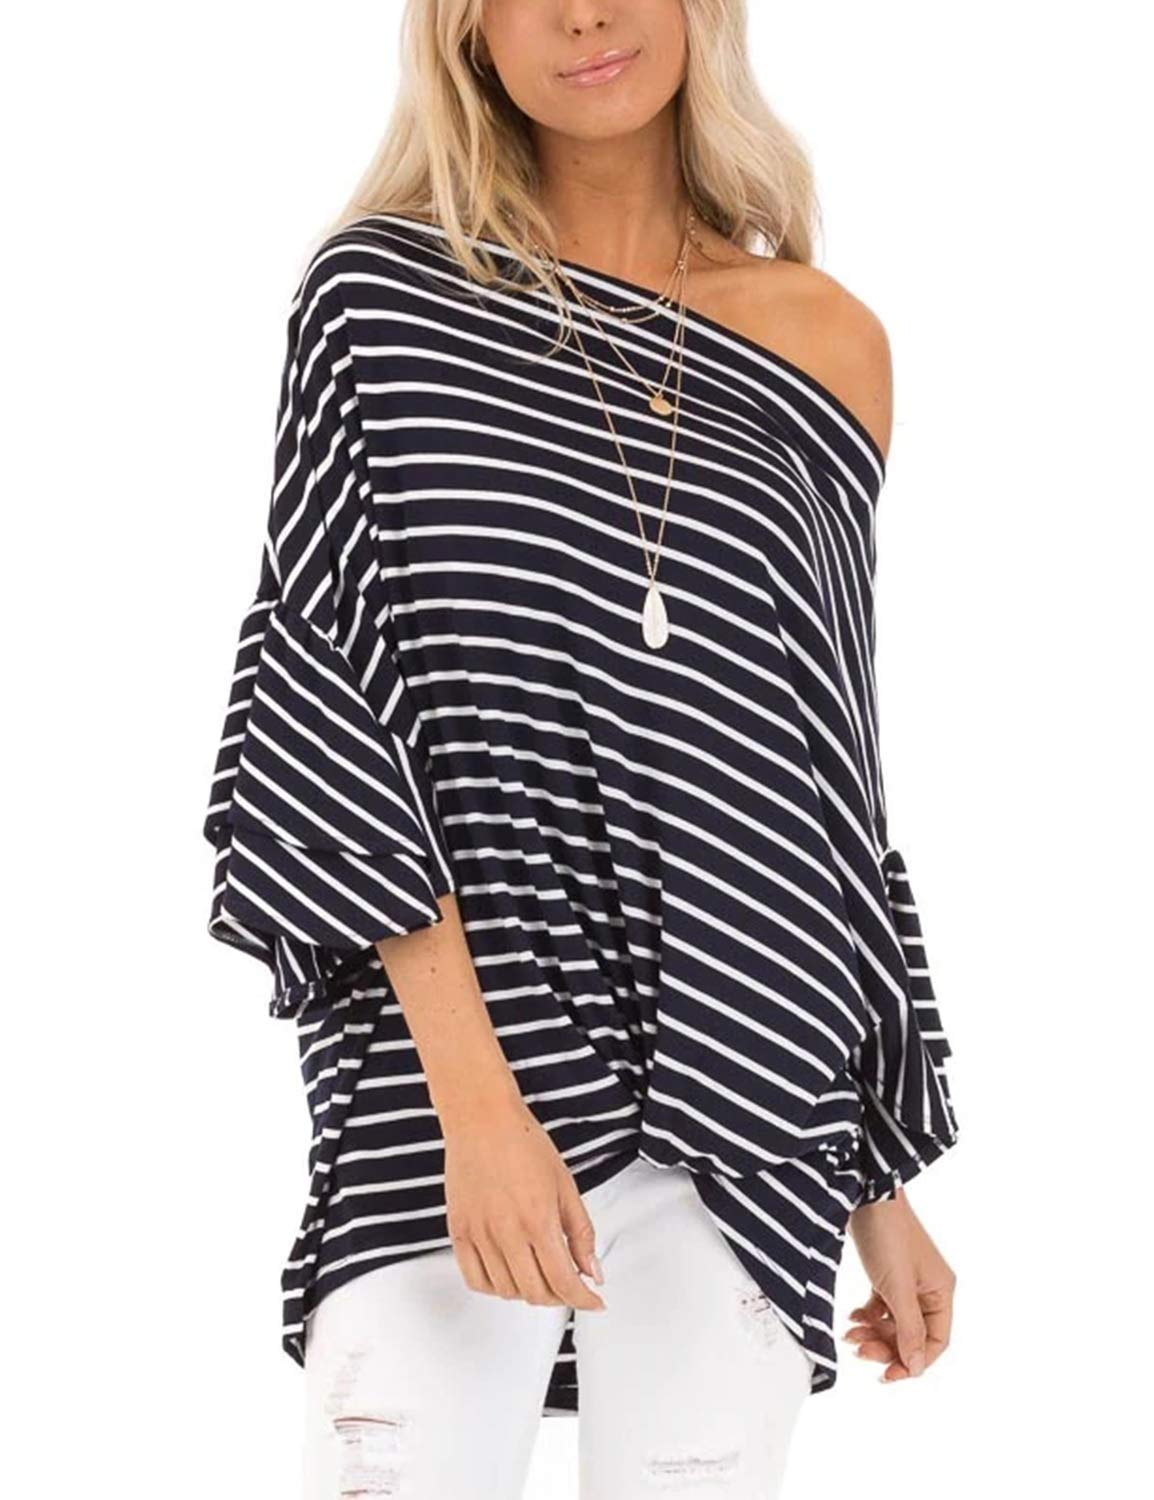 BMJL Women's Off The Shoulder Top Quarter Bell Sleeve High Low T Shirt Striped Blouse